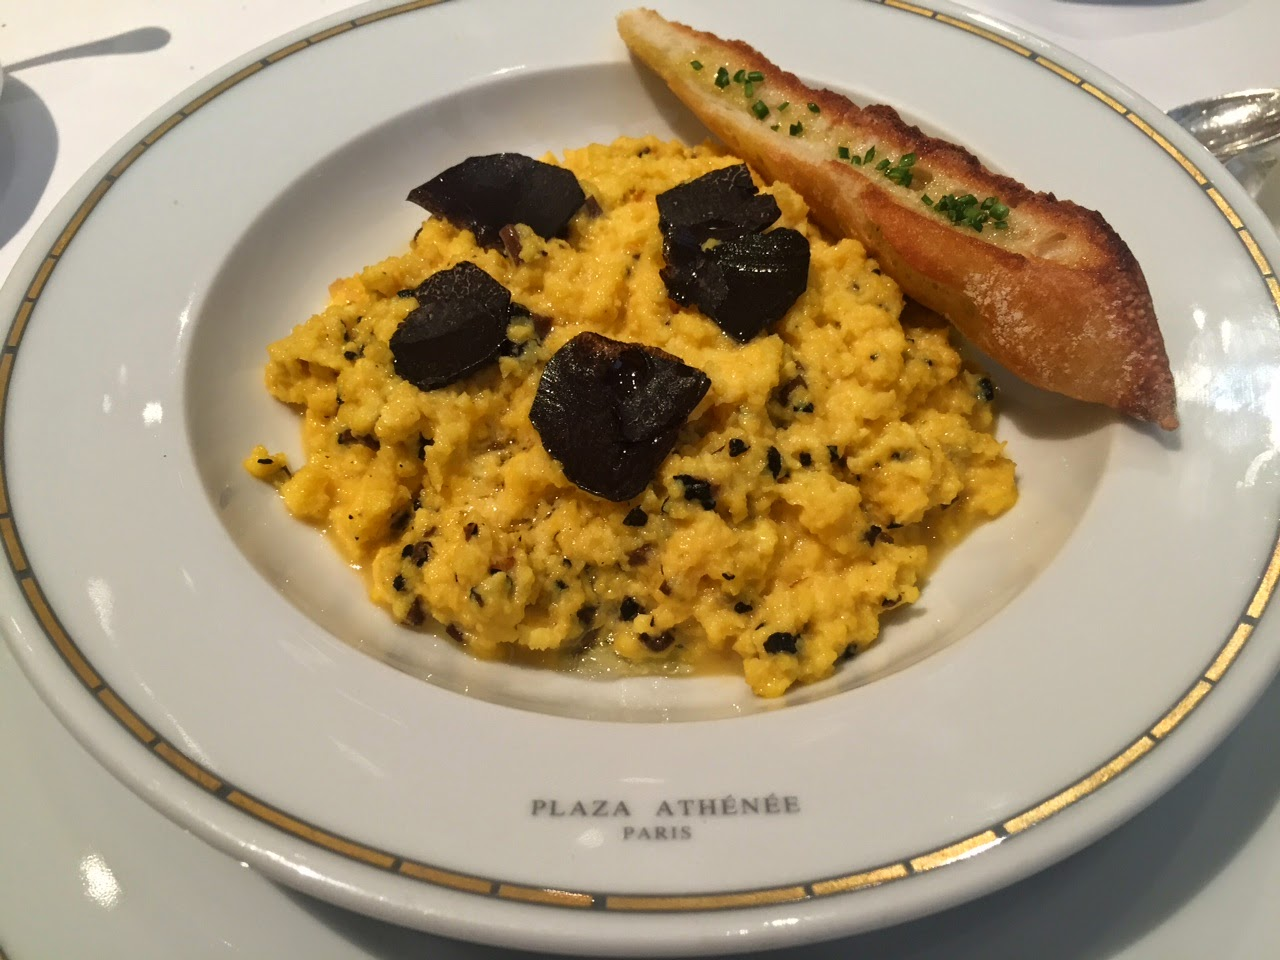 Scrambled eggs with truffles at the Haute Couture Brunch, Alain Ducasse au Plaza Athénée, Paris